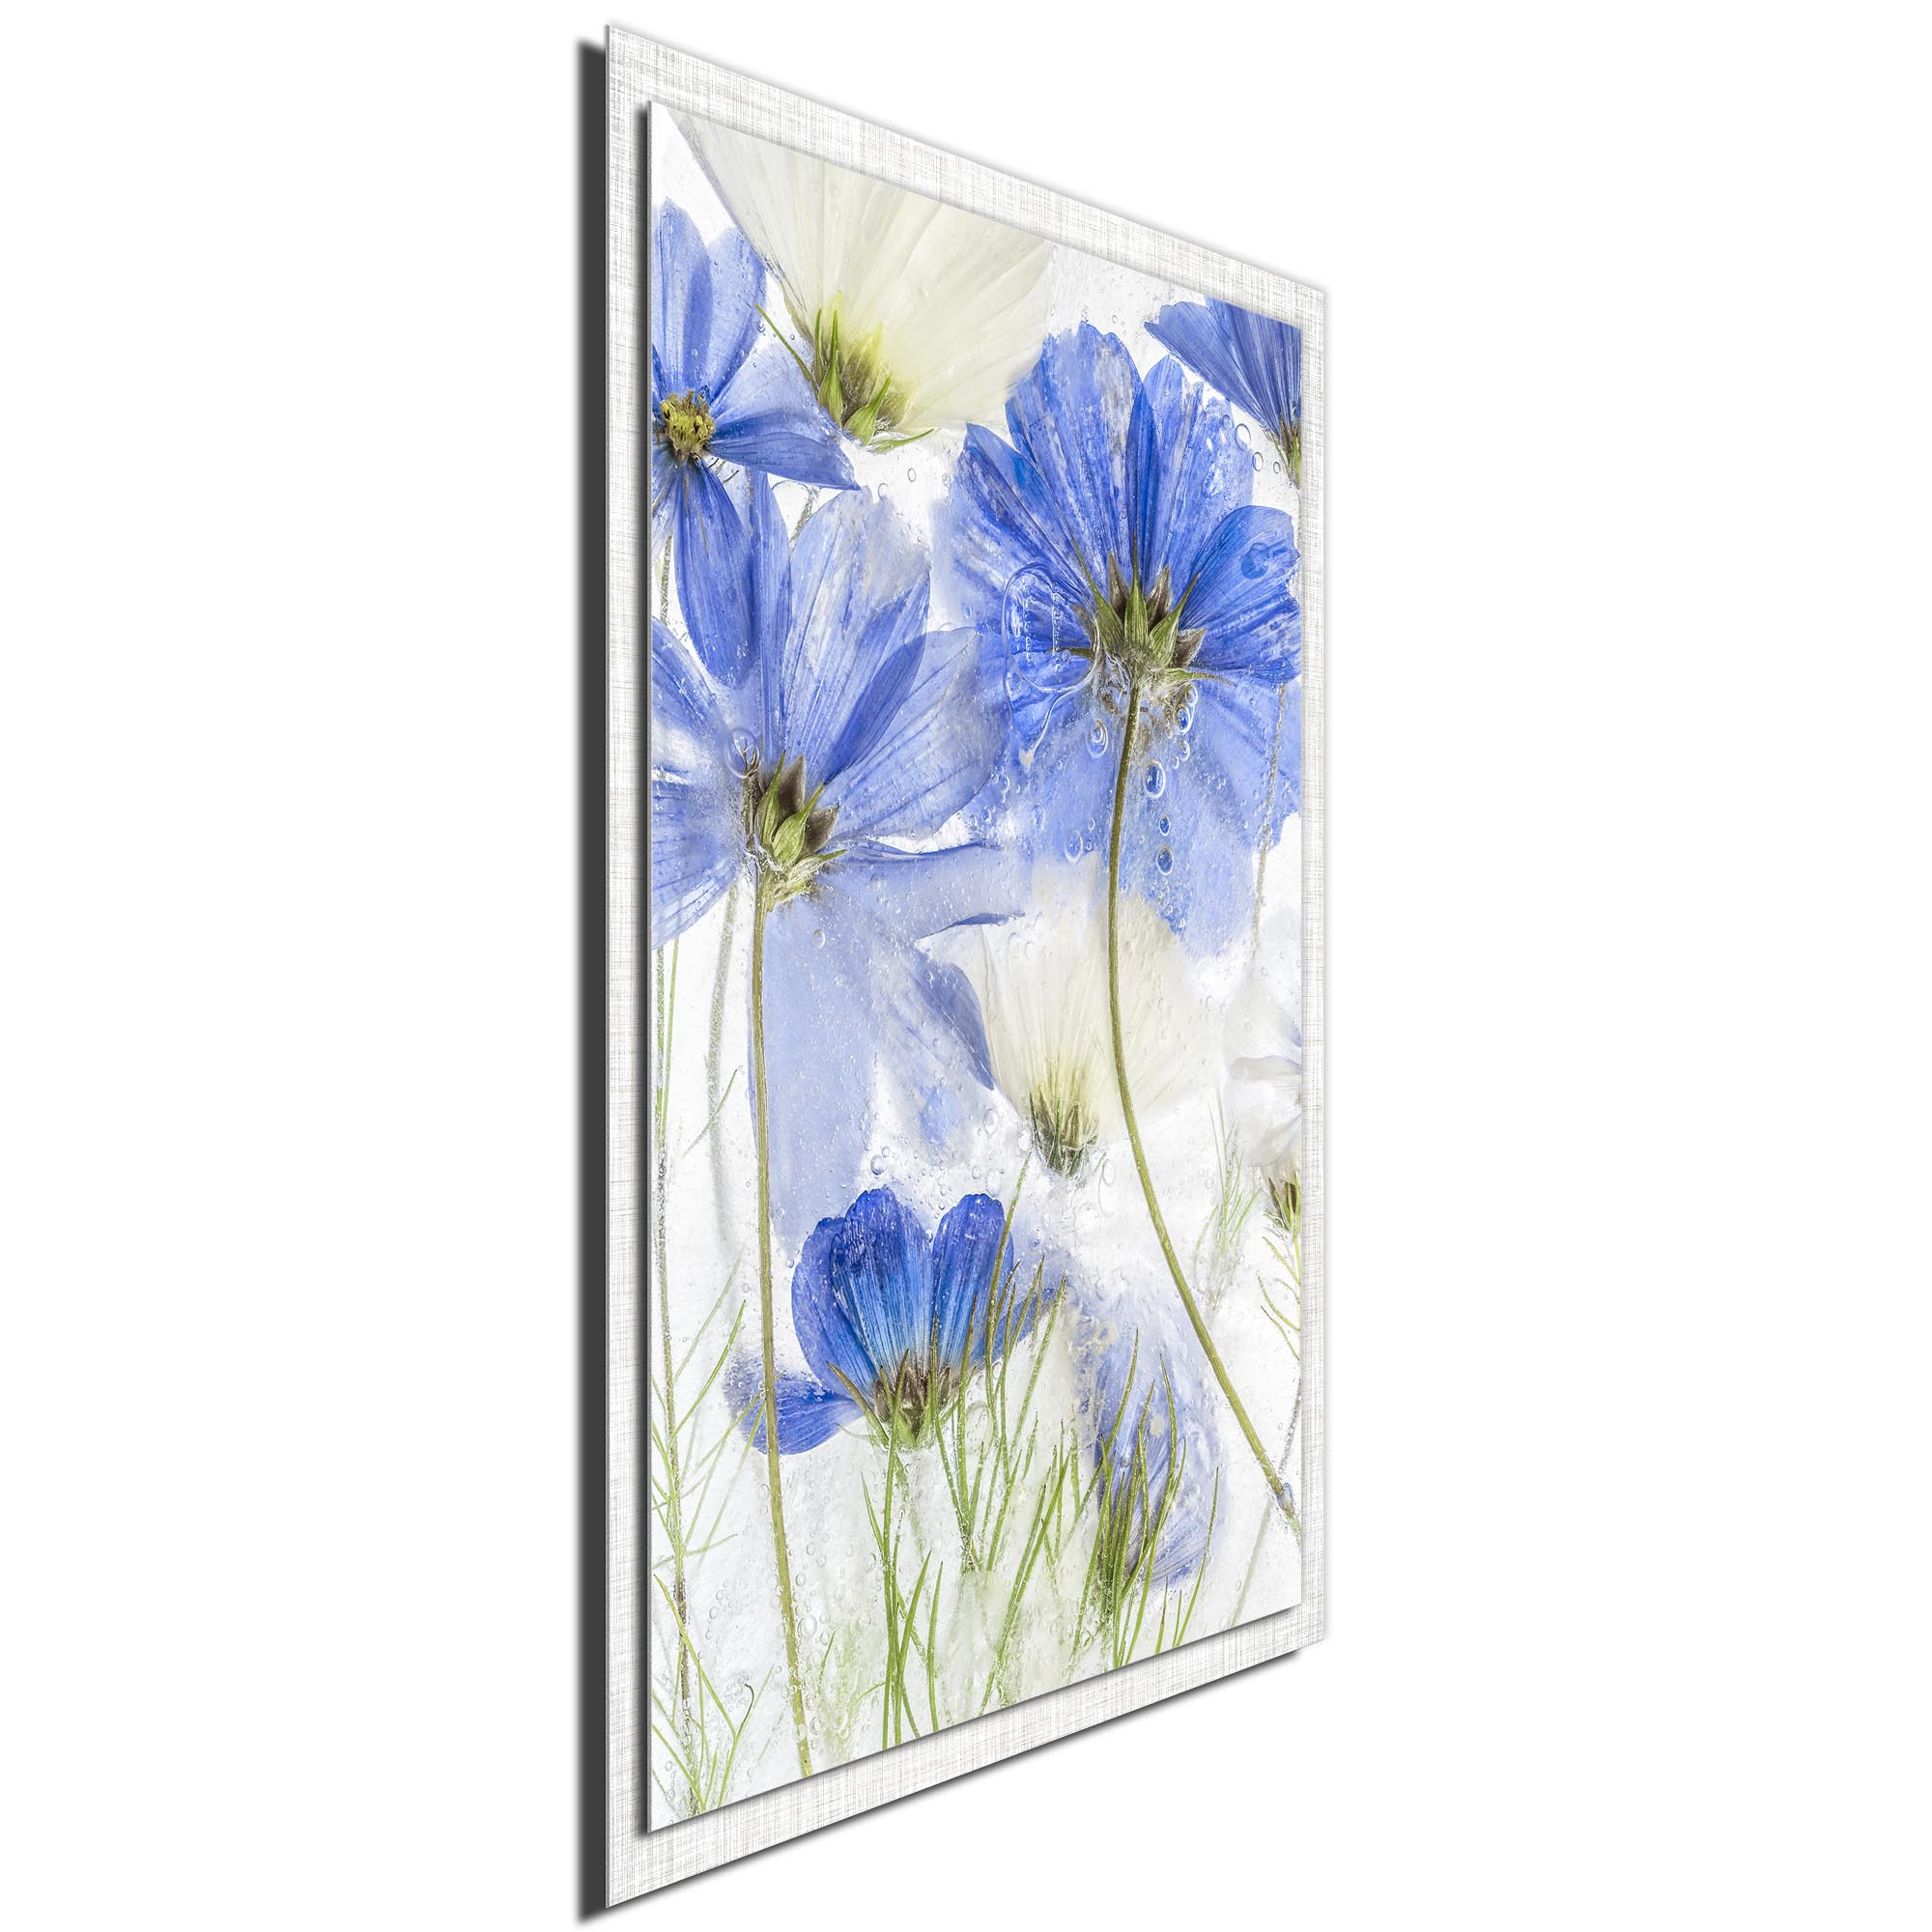 Cosmos Blue by Mandy Disher - Modern Farmhouse Floral on Metal - Image 2